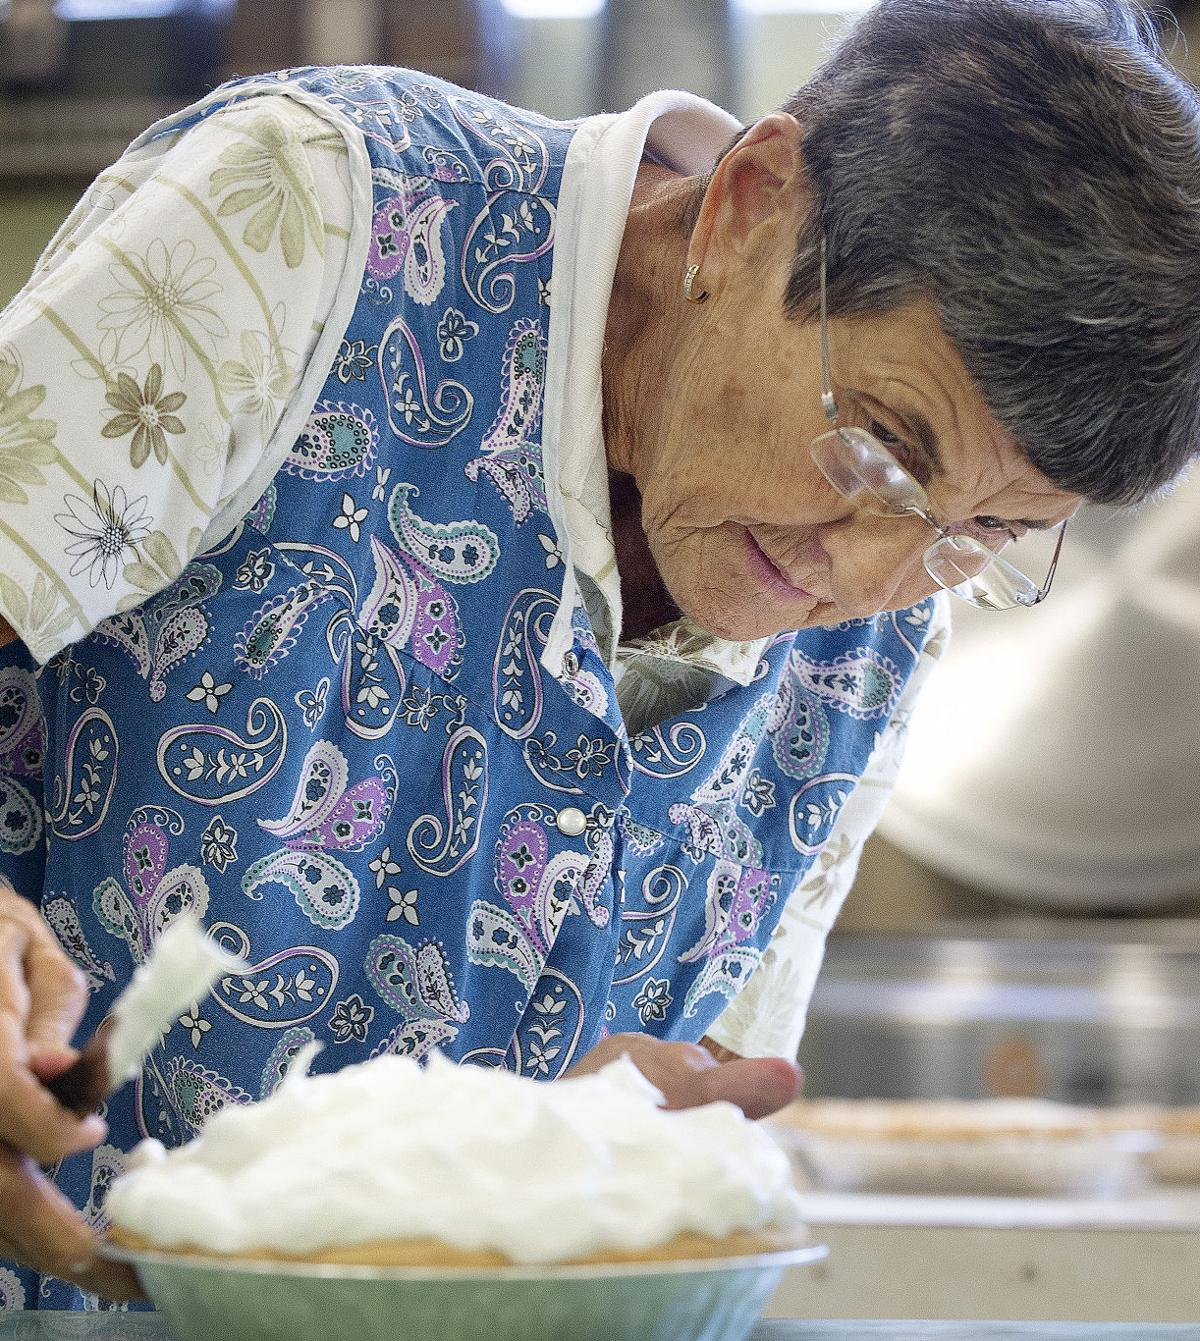 Pies the limit: Thurmont residents sell baked goods to fund church ...